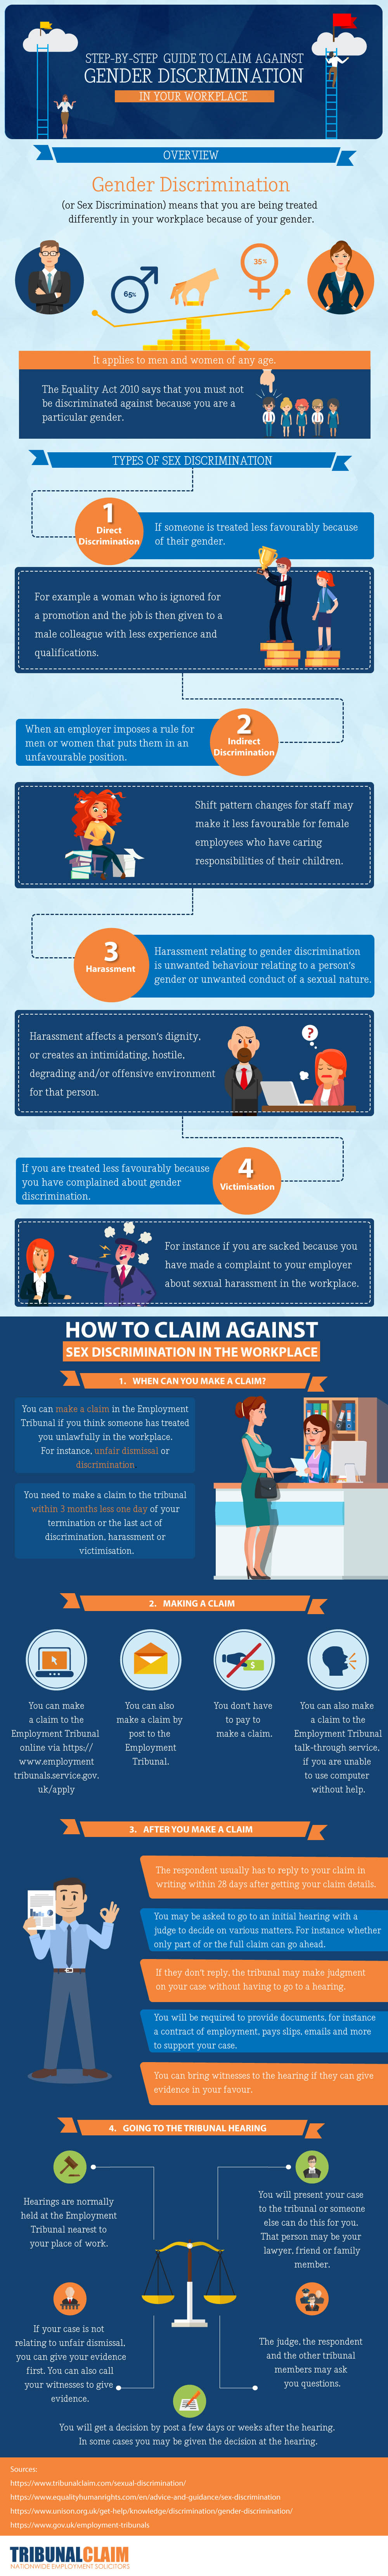 Step By Step Guide To Claim Against Gender Decimation In Your Workplace